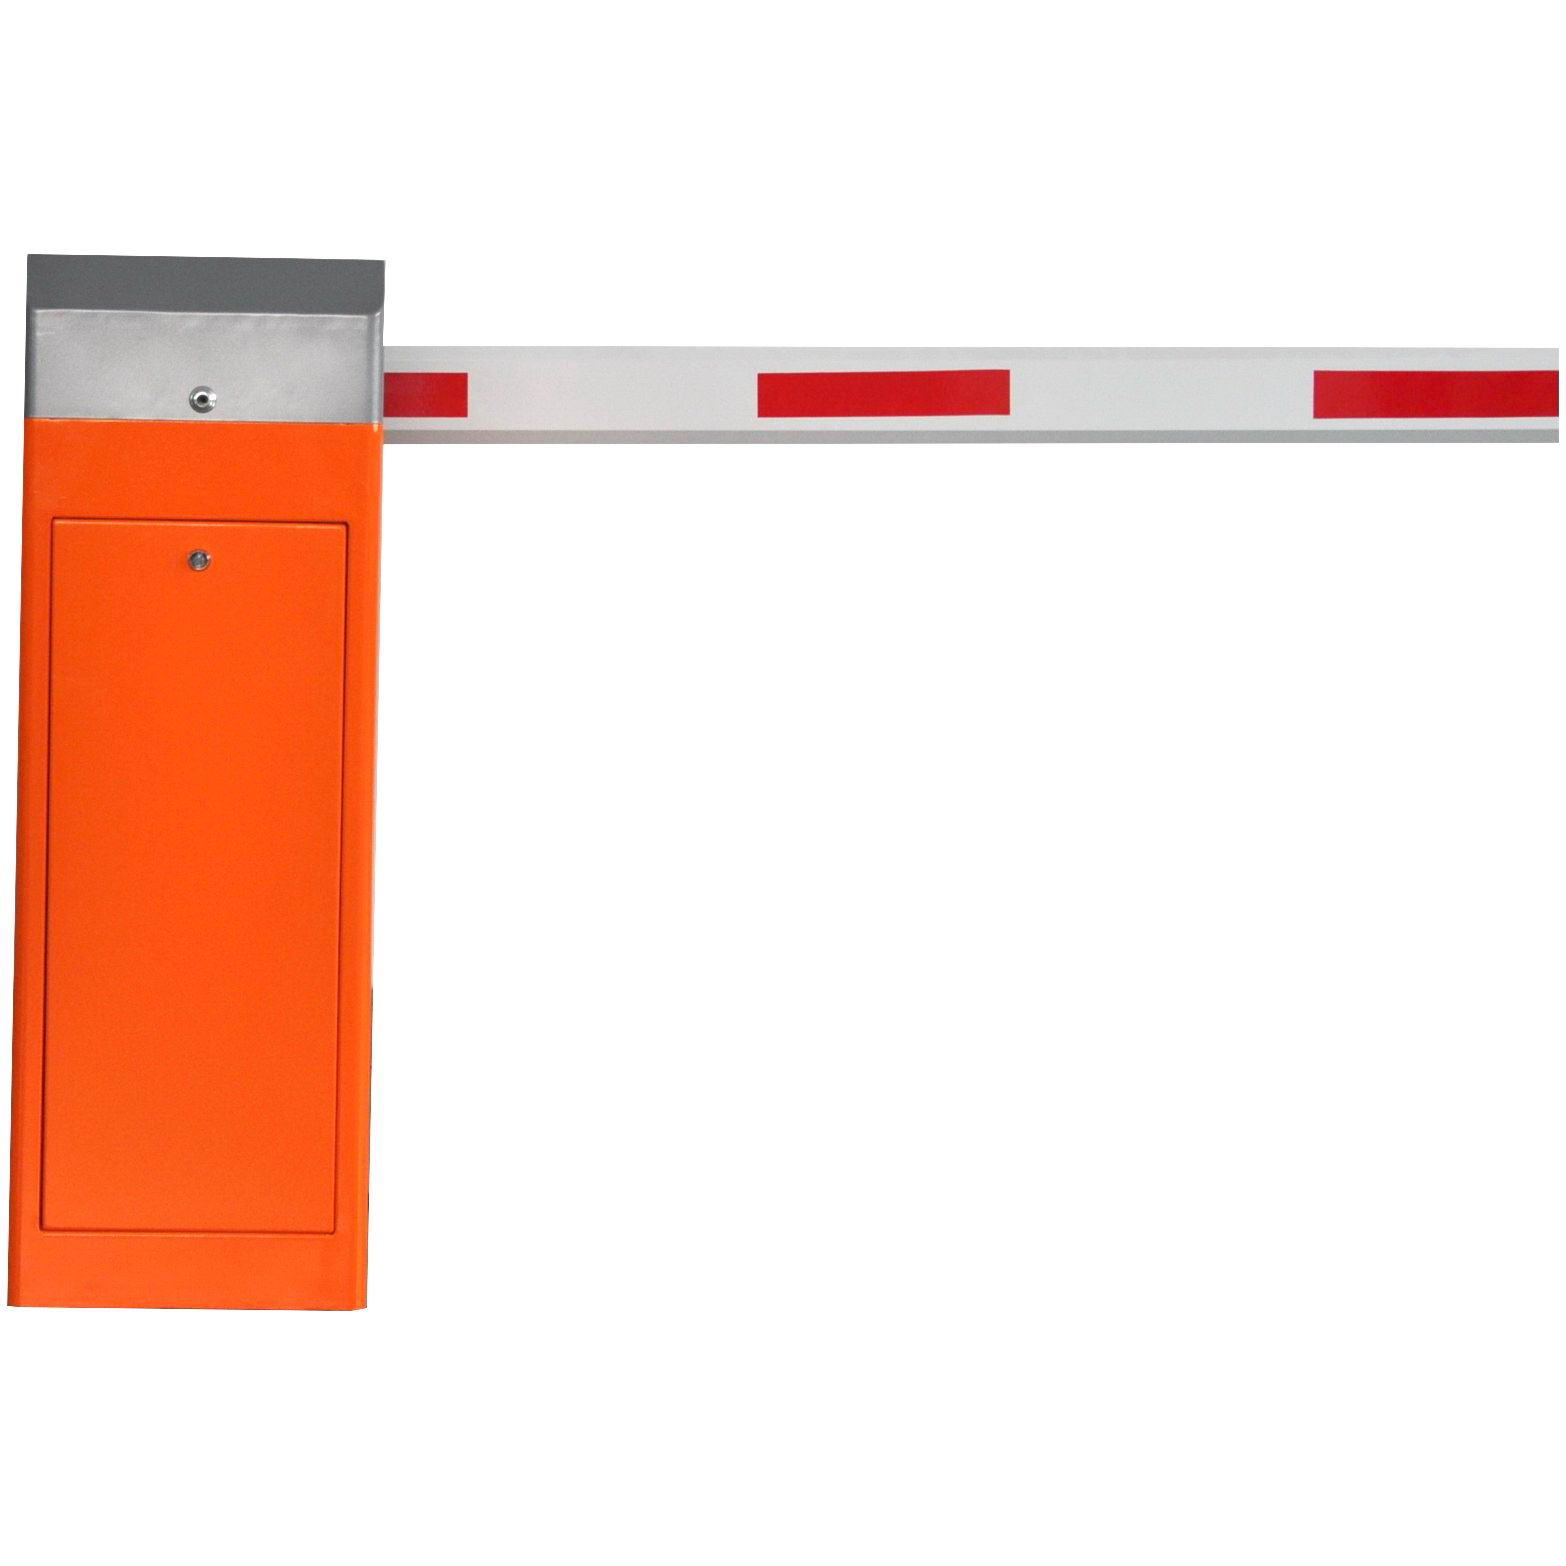 Car Park Gate Barrier Operator Manufacturer in Shenzhen China by